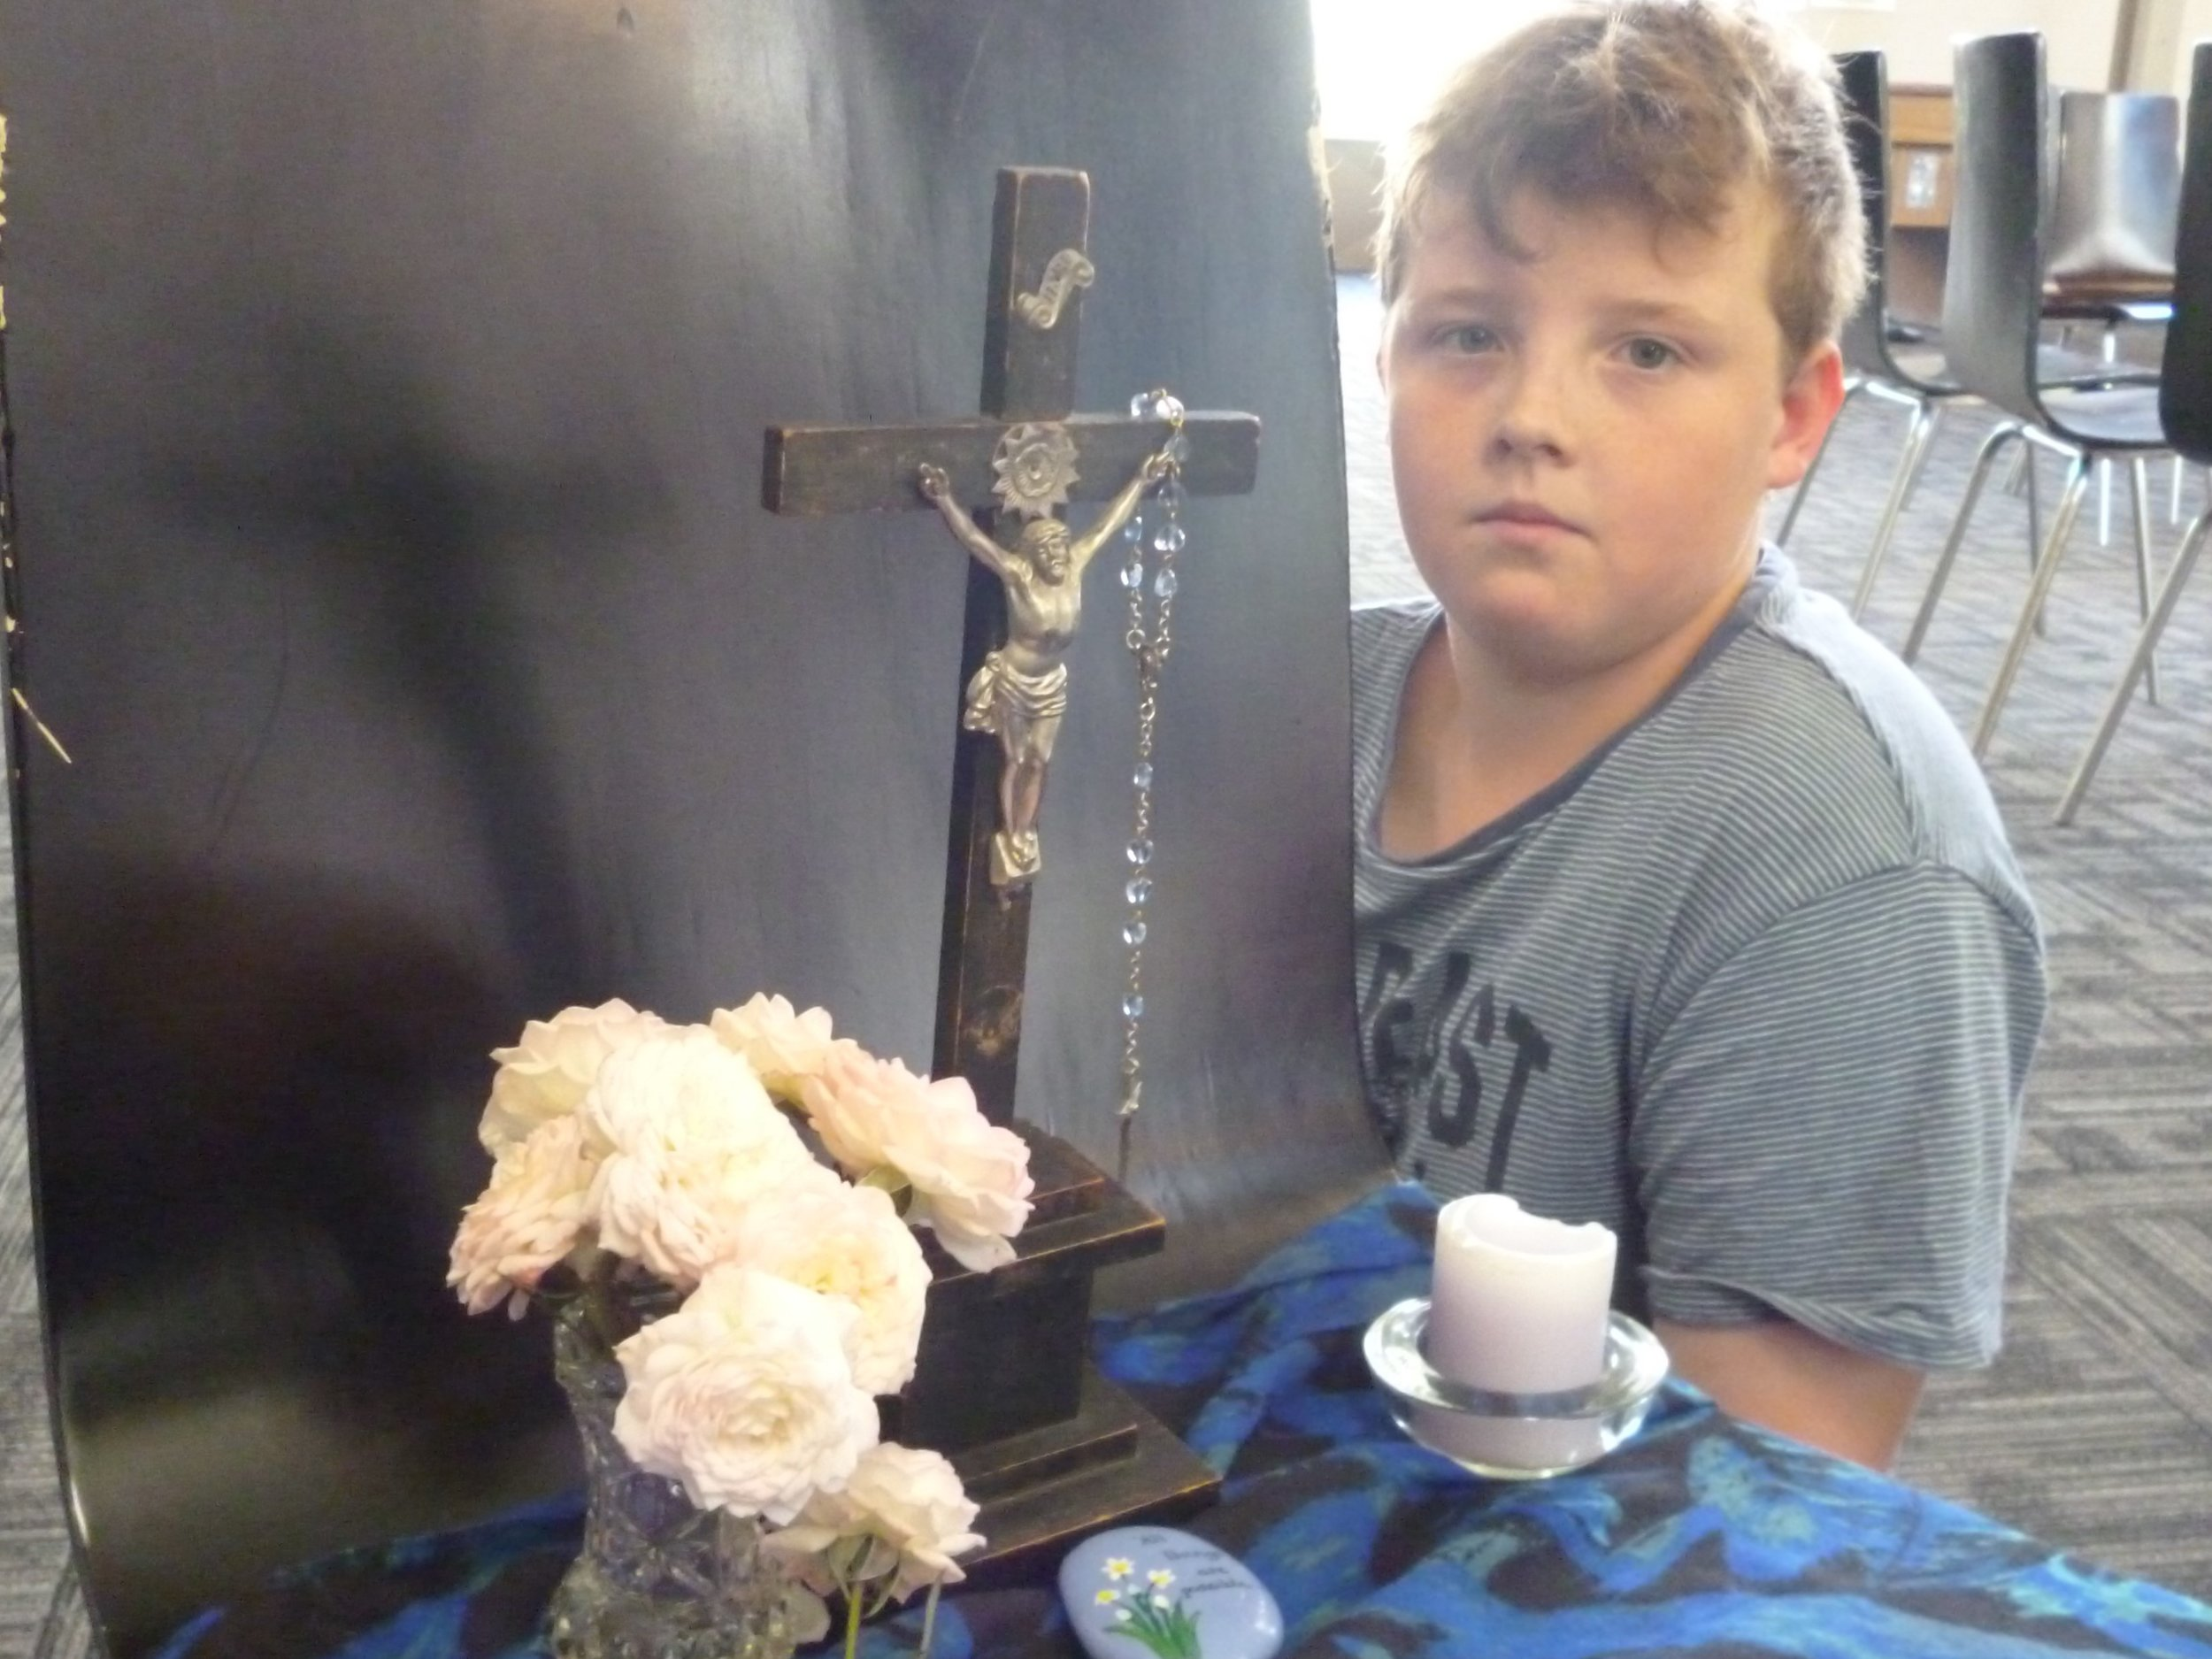 Shamus Young, of Tapanui, displays a prayer table he has designed